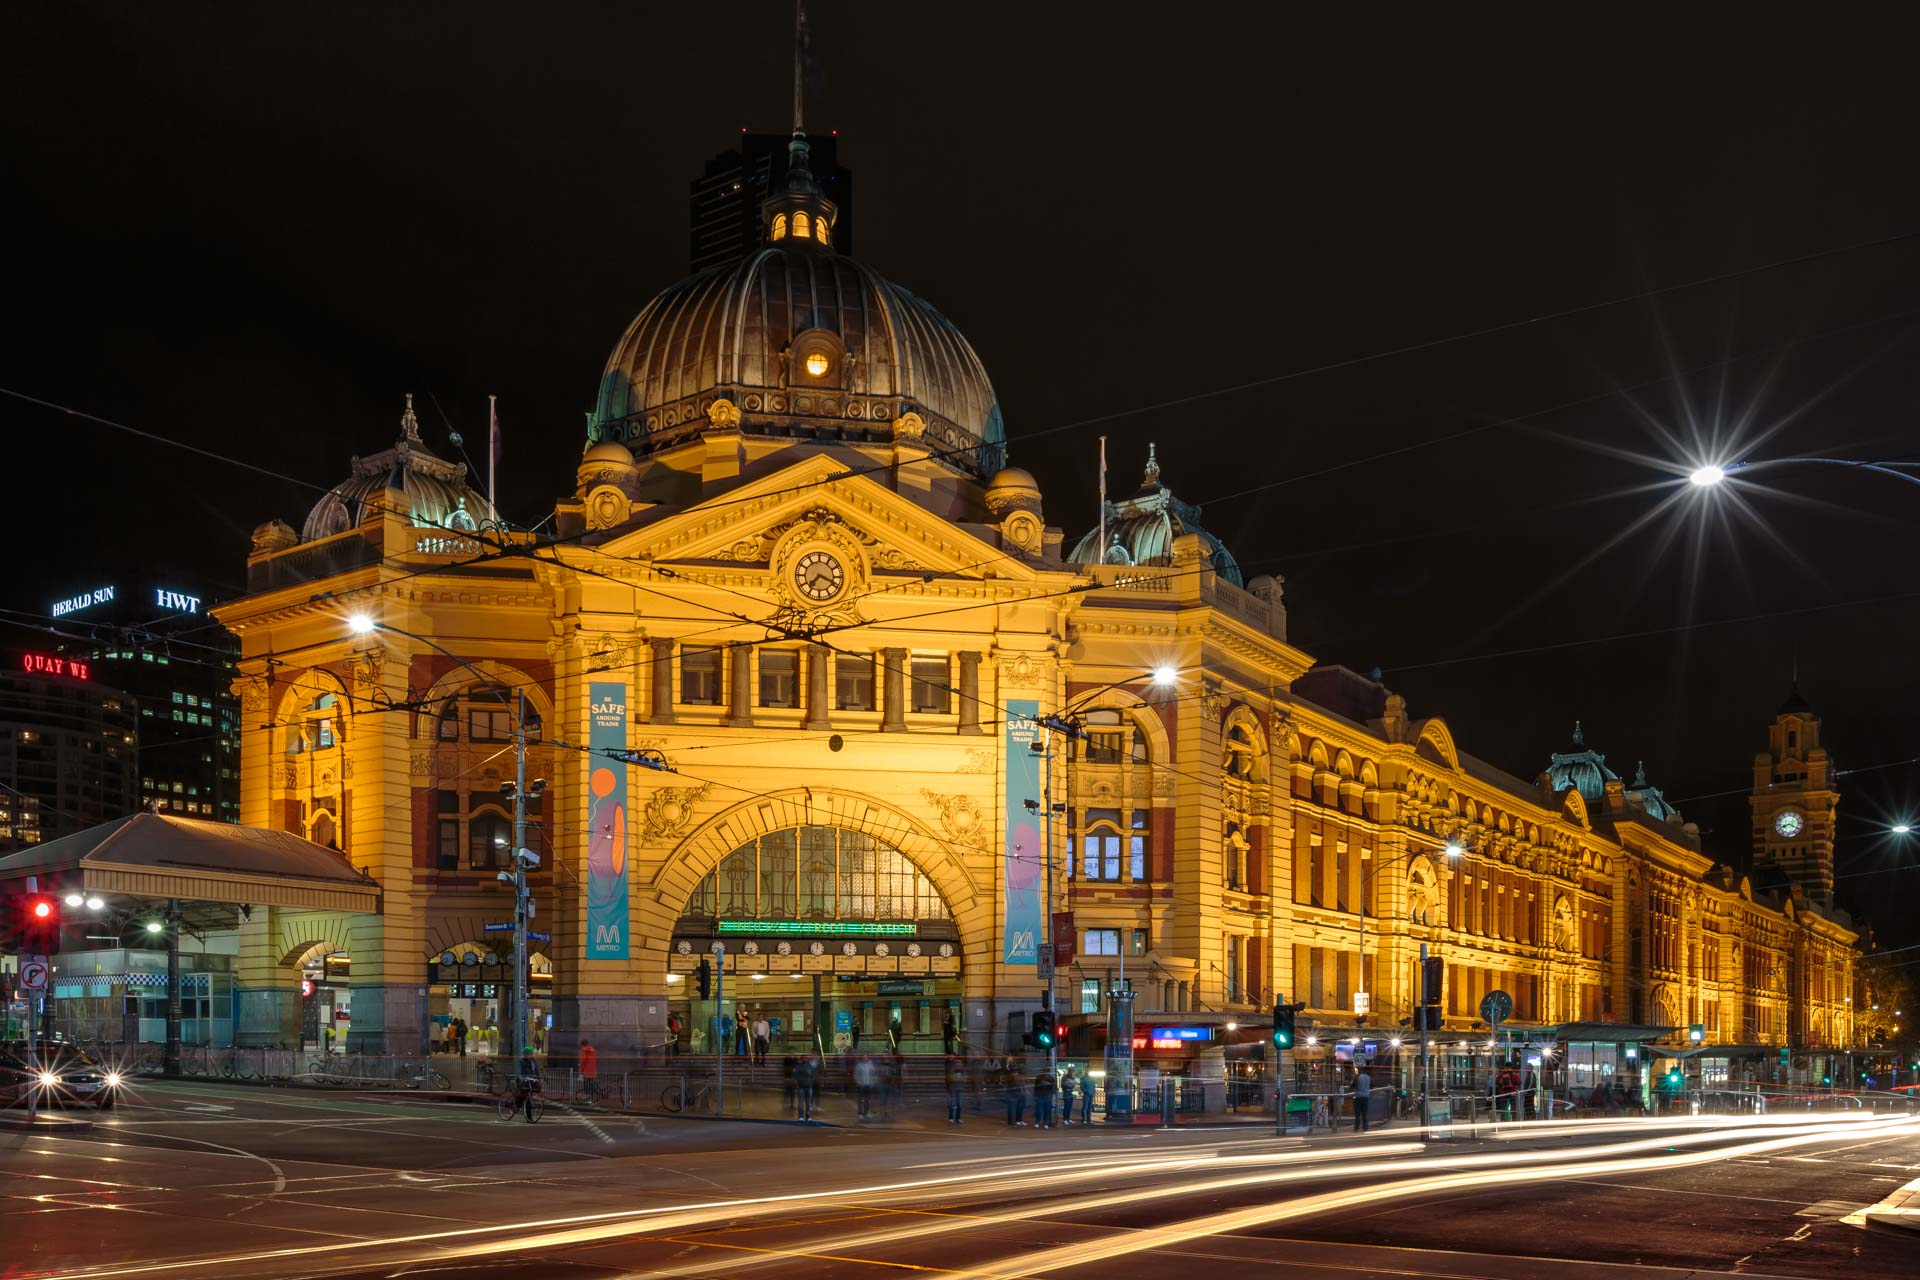 flinders street station illuminated building in cityscape melbourne long exposure photographed at night with car headlights blurred passing by